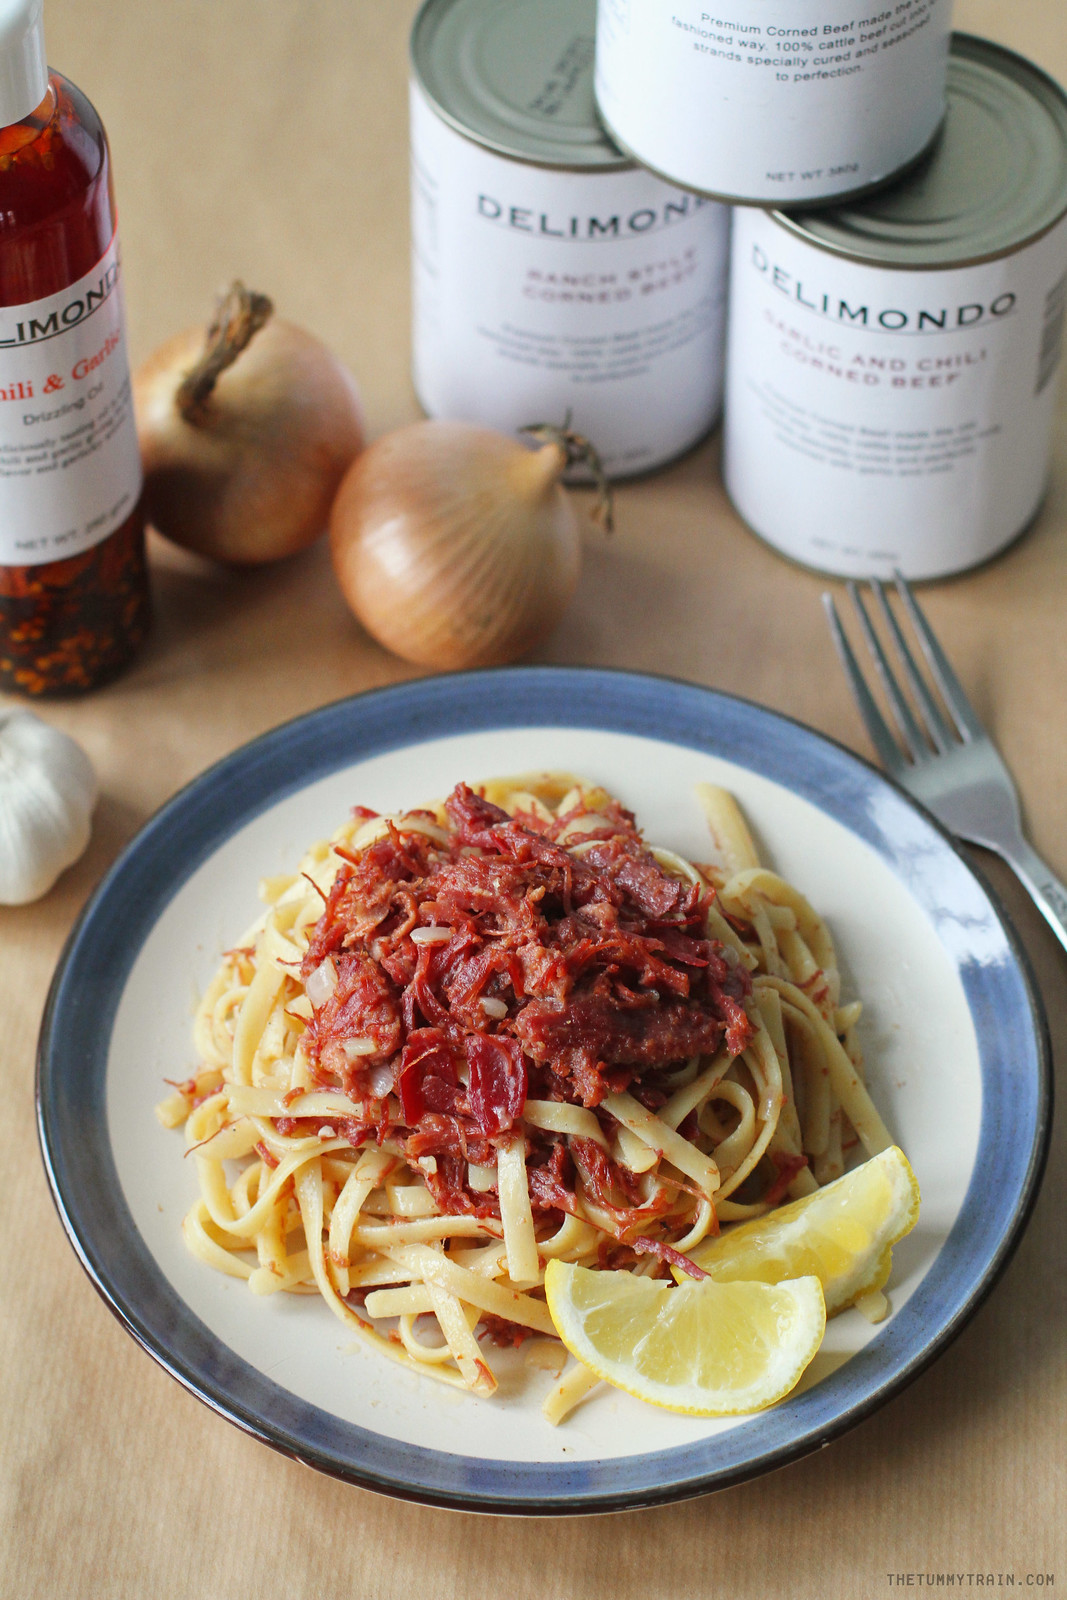 27856690902 8495a897fc h - Adding pizzaz to a classic pasta with Delimondo Corned Beef